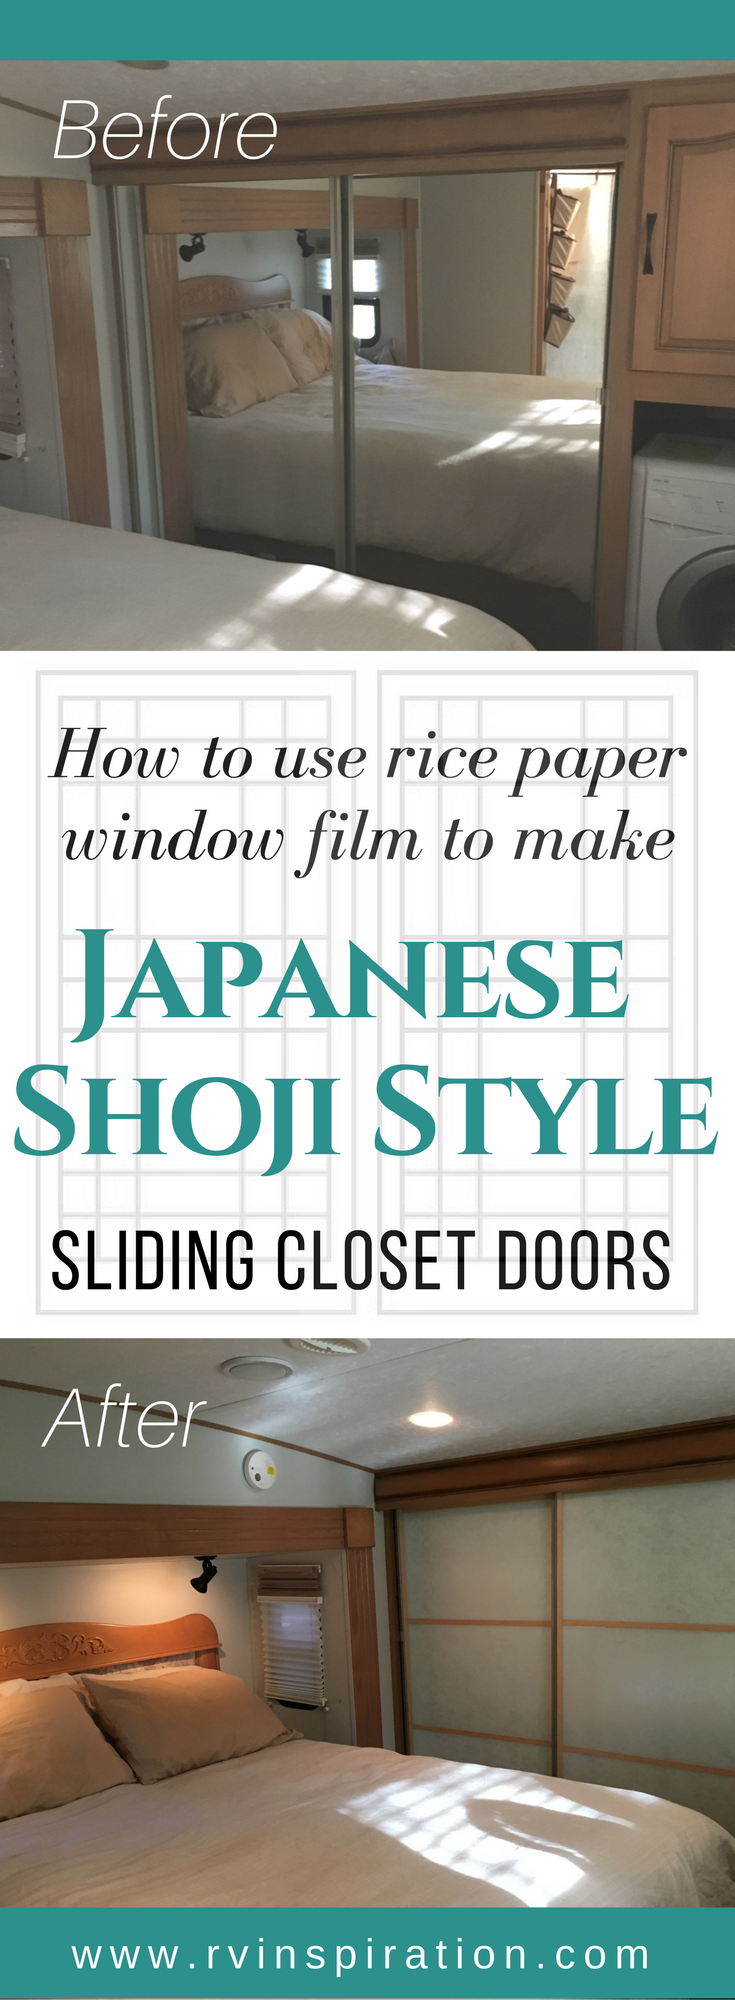 DIY Mirror Closet Makeover Idea: How To Turn Sliding Doors Into Japanese  Shoji Screens |